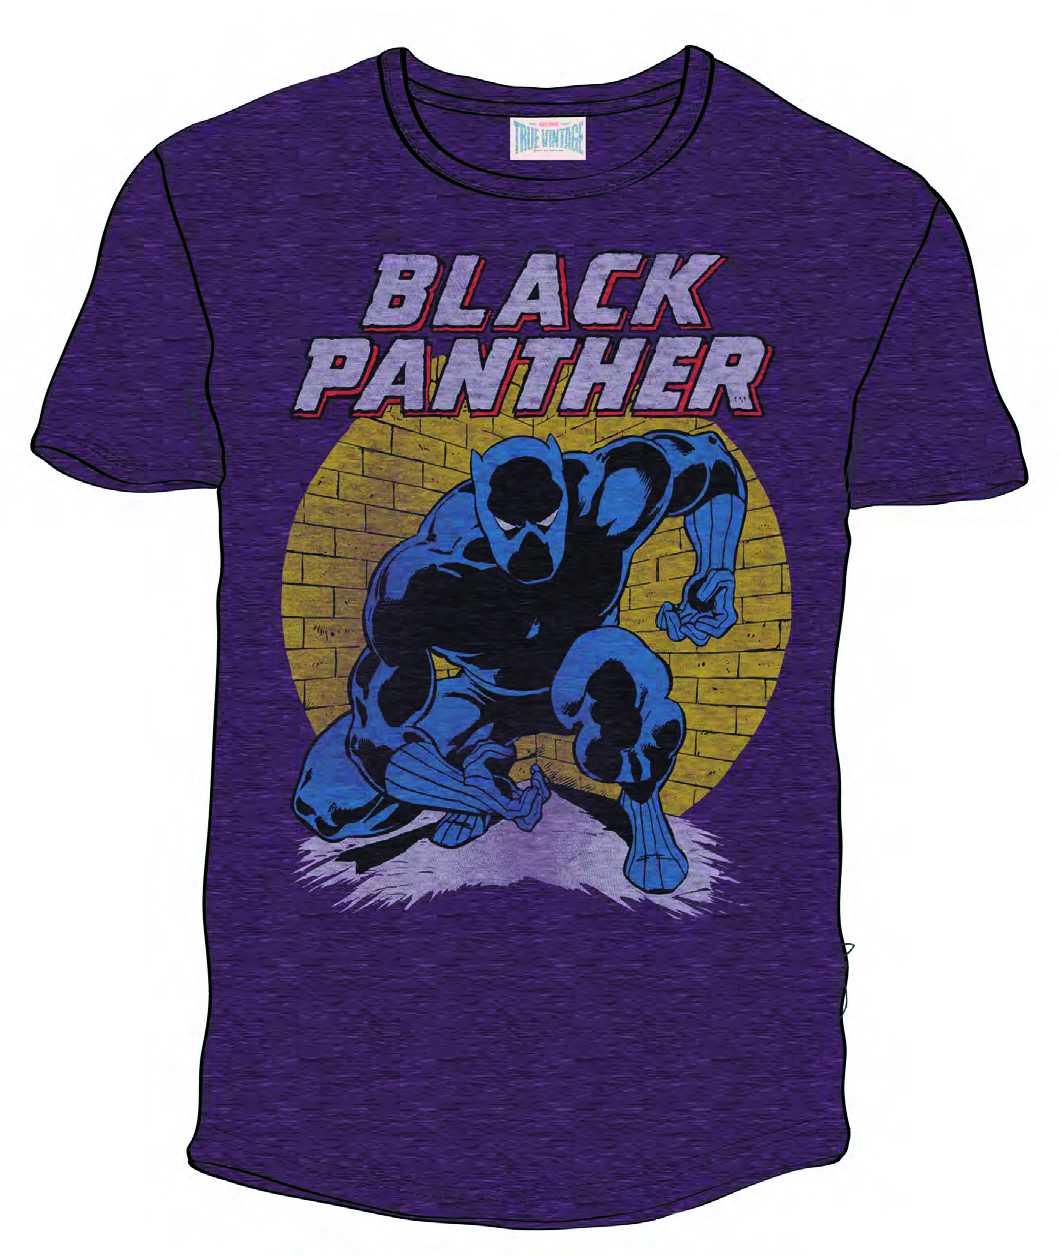 BLACK PANTHER PX BLACKBERRY HEATHER T/S XL